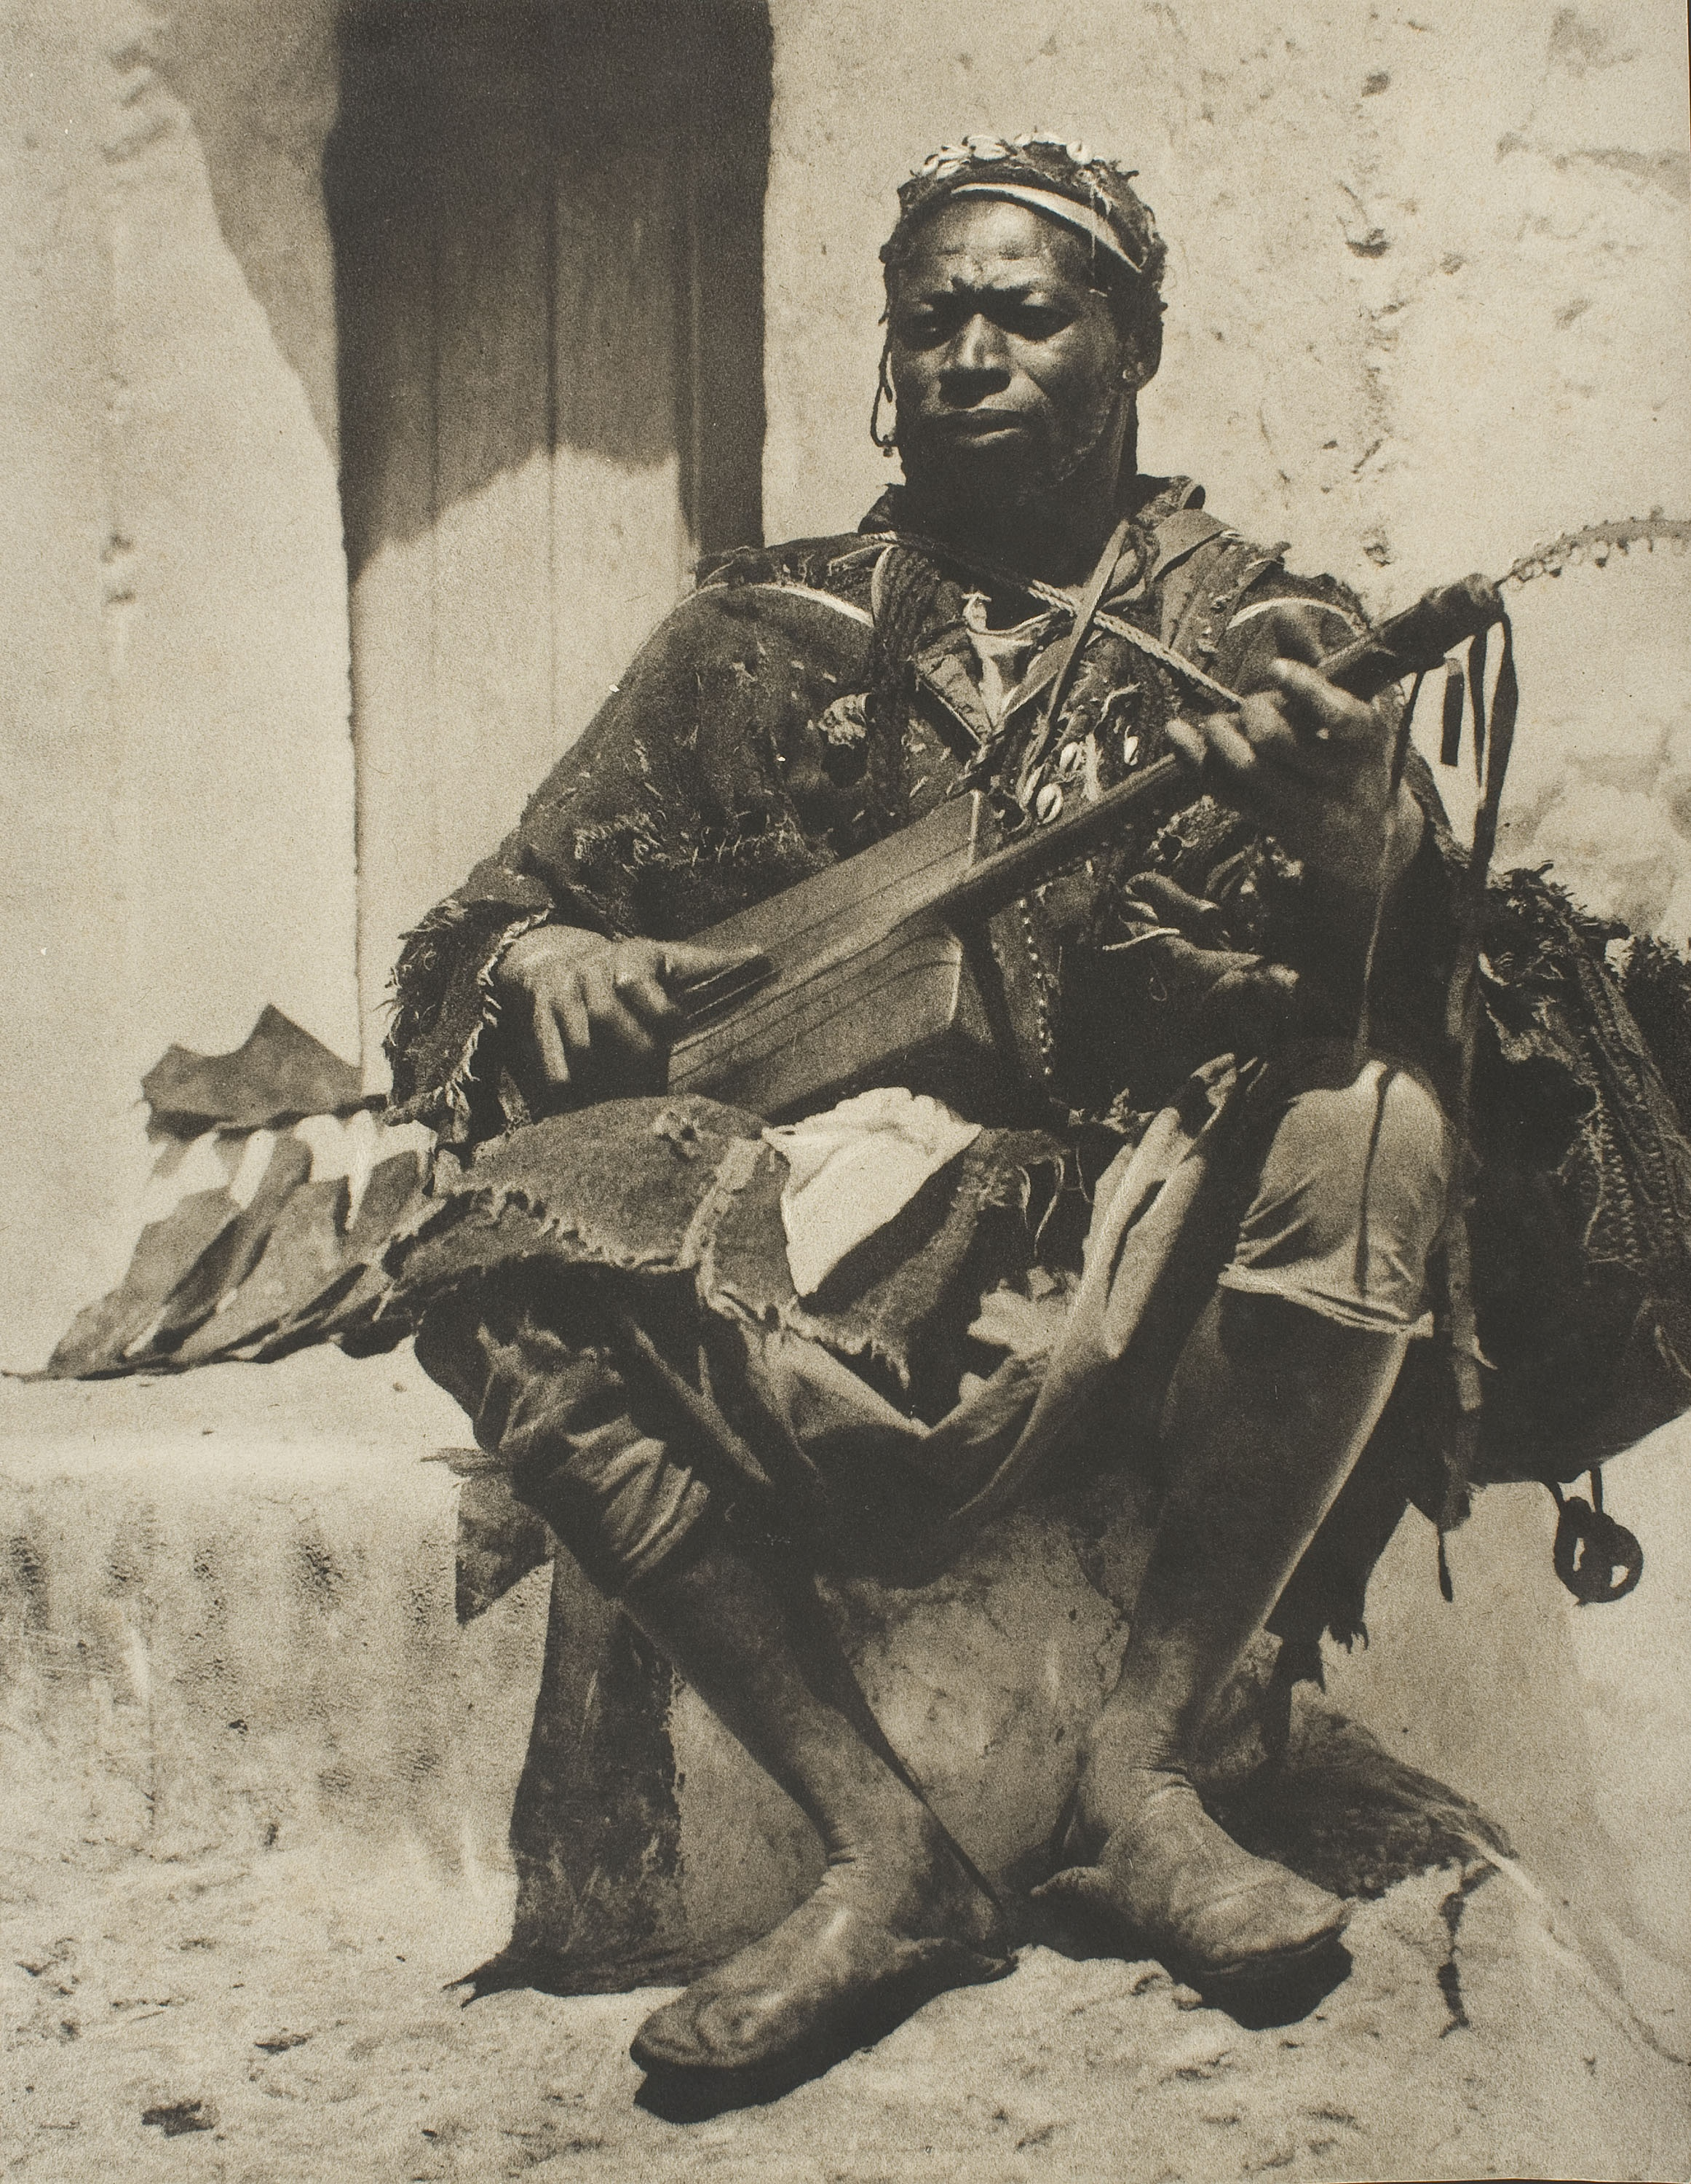 Claudi Carbonell - El moro de la guitarra [The man of the guinbri] - Circa 1920